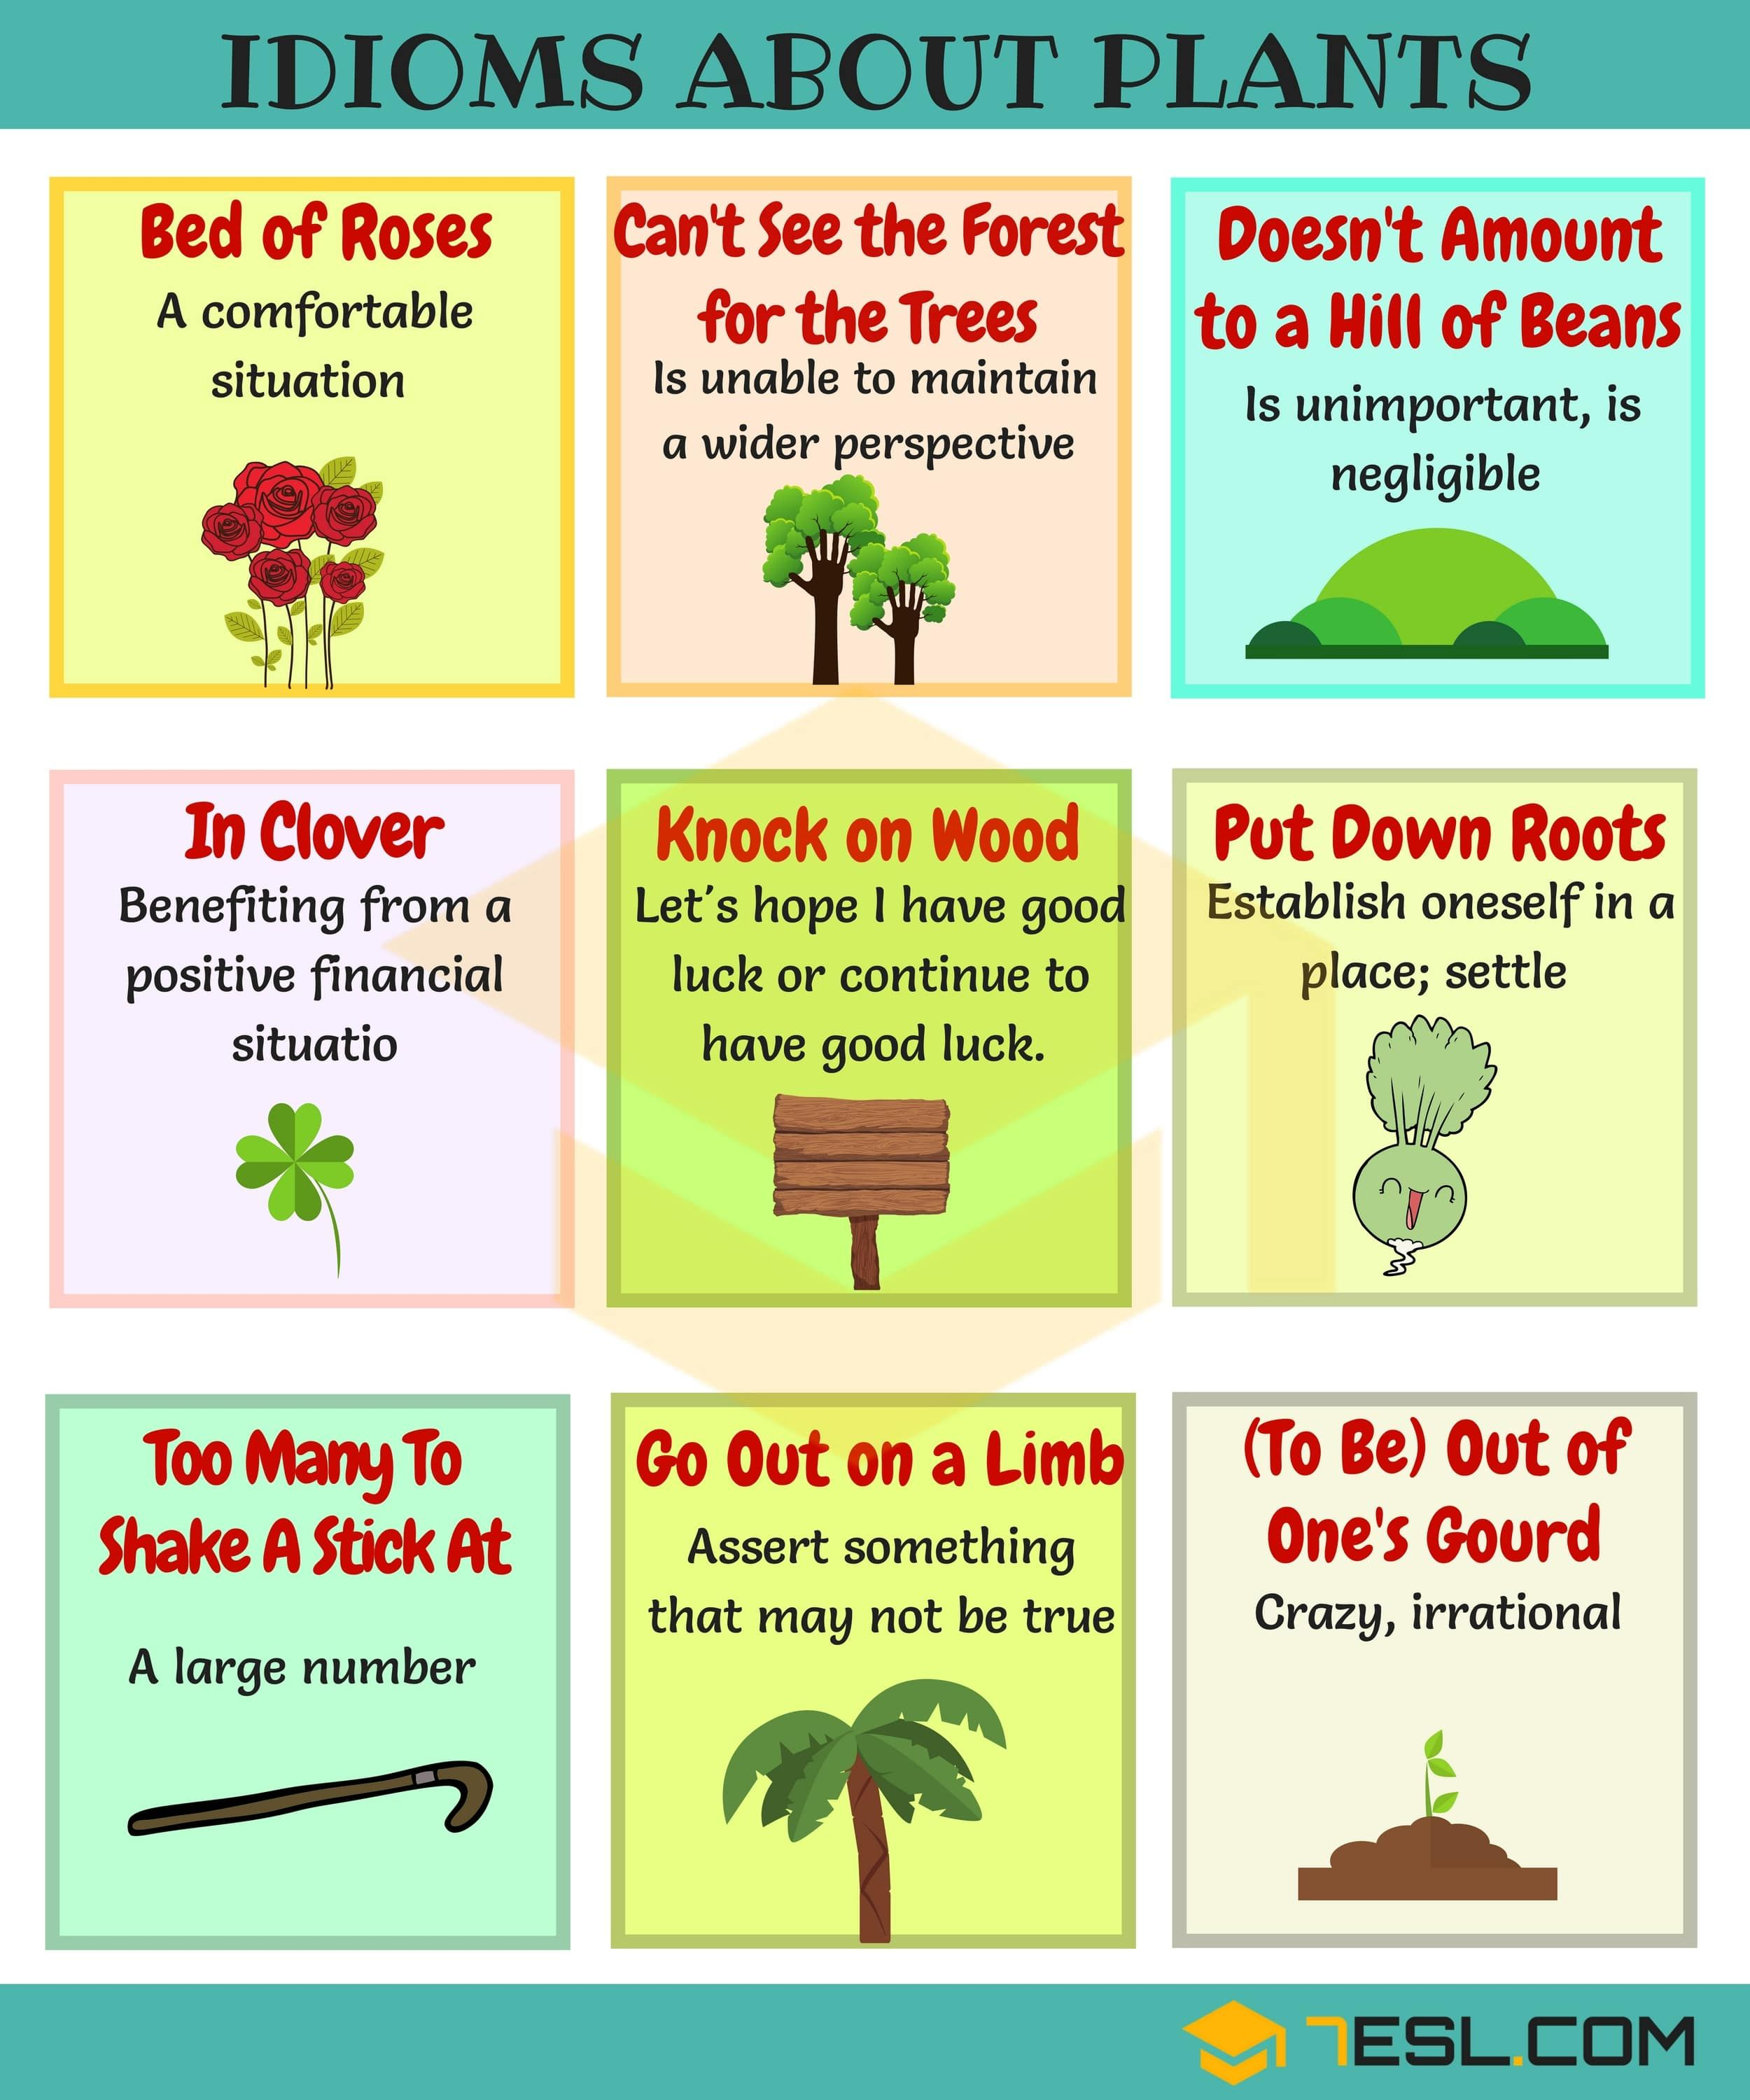 20+ Useful Trees, Plants and Flowers Idioms in English • 20ESL ...